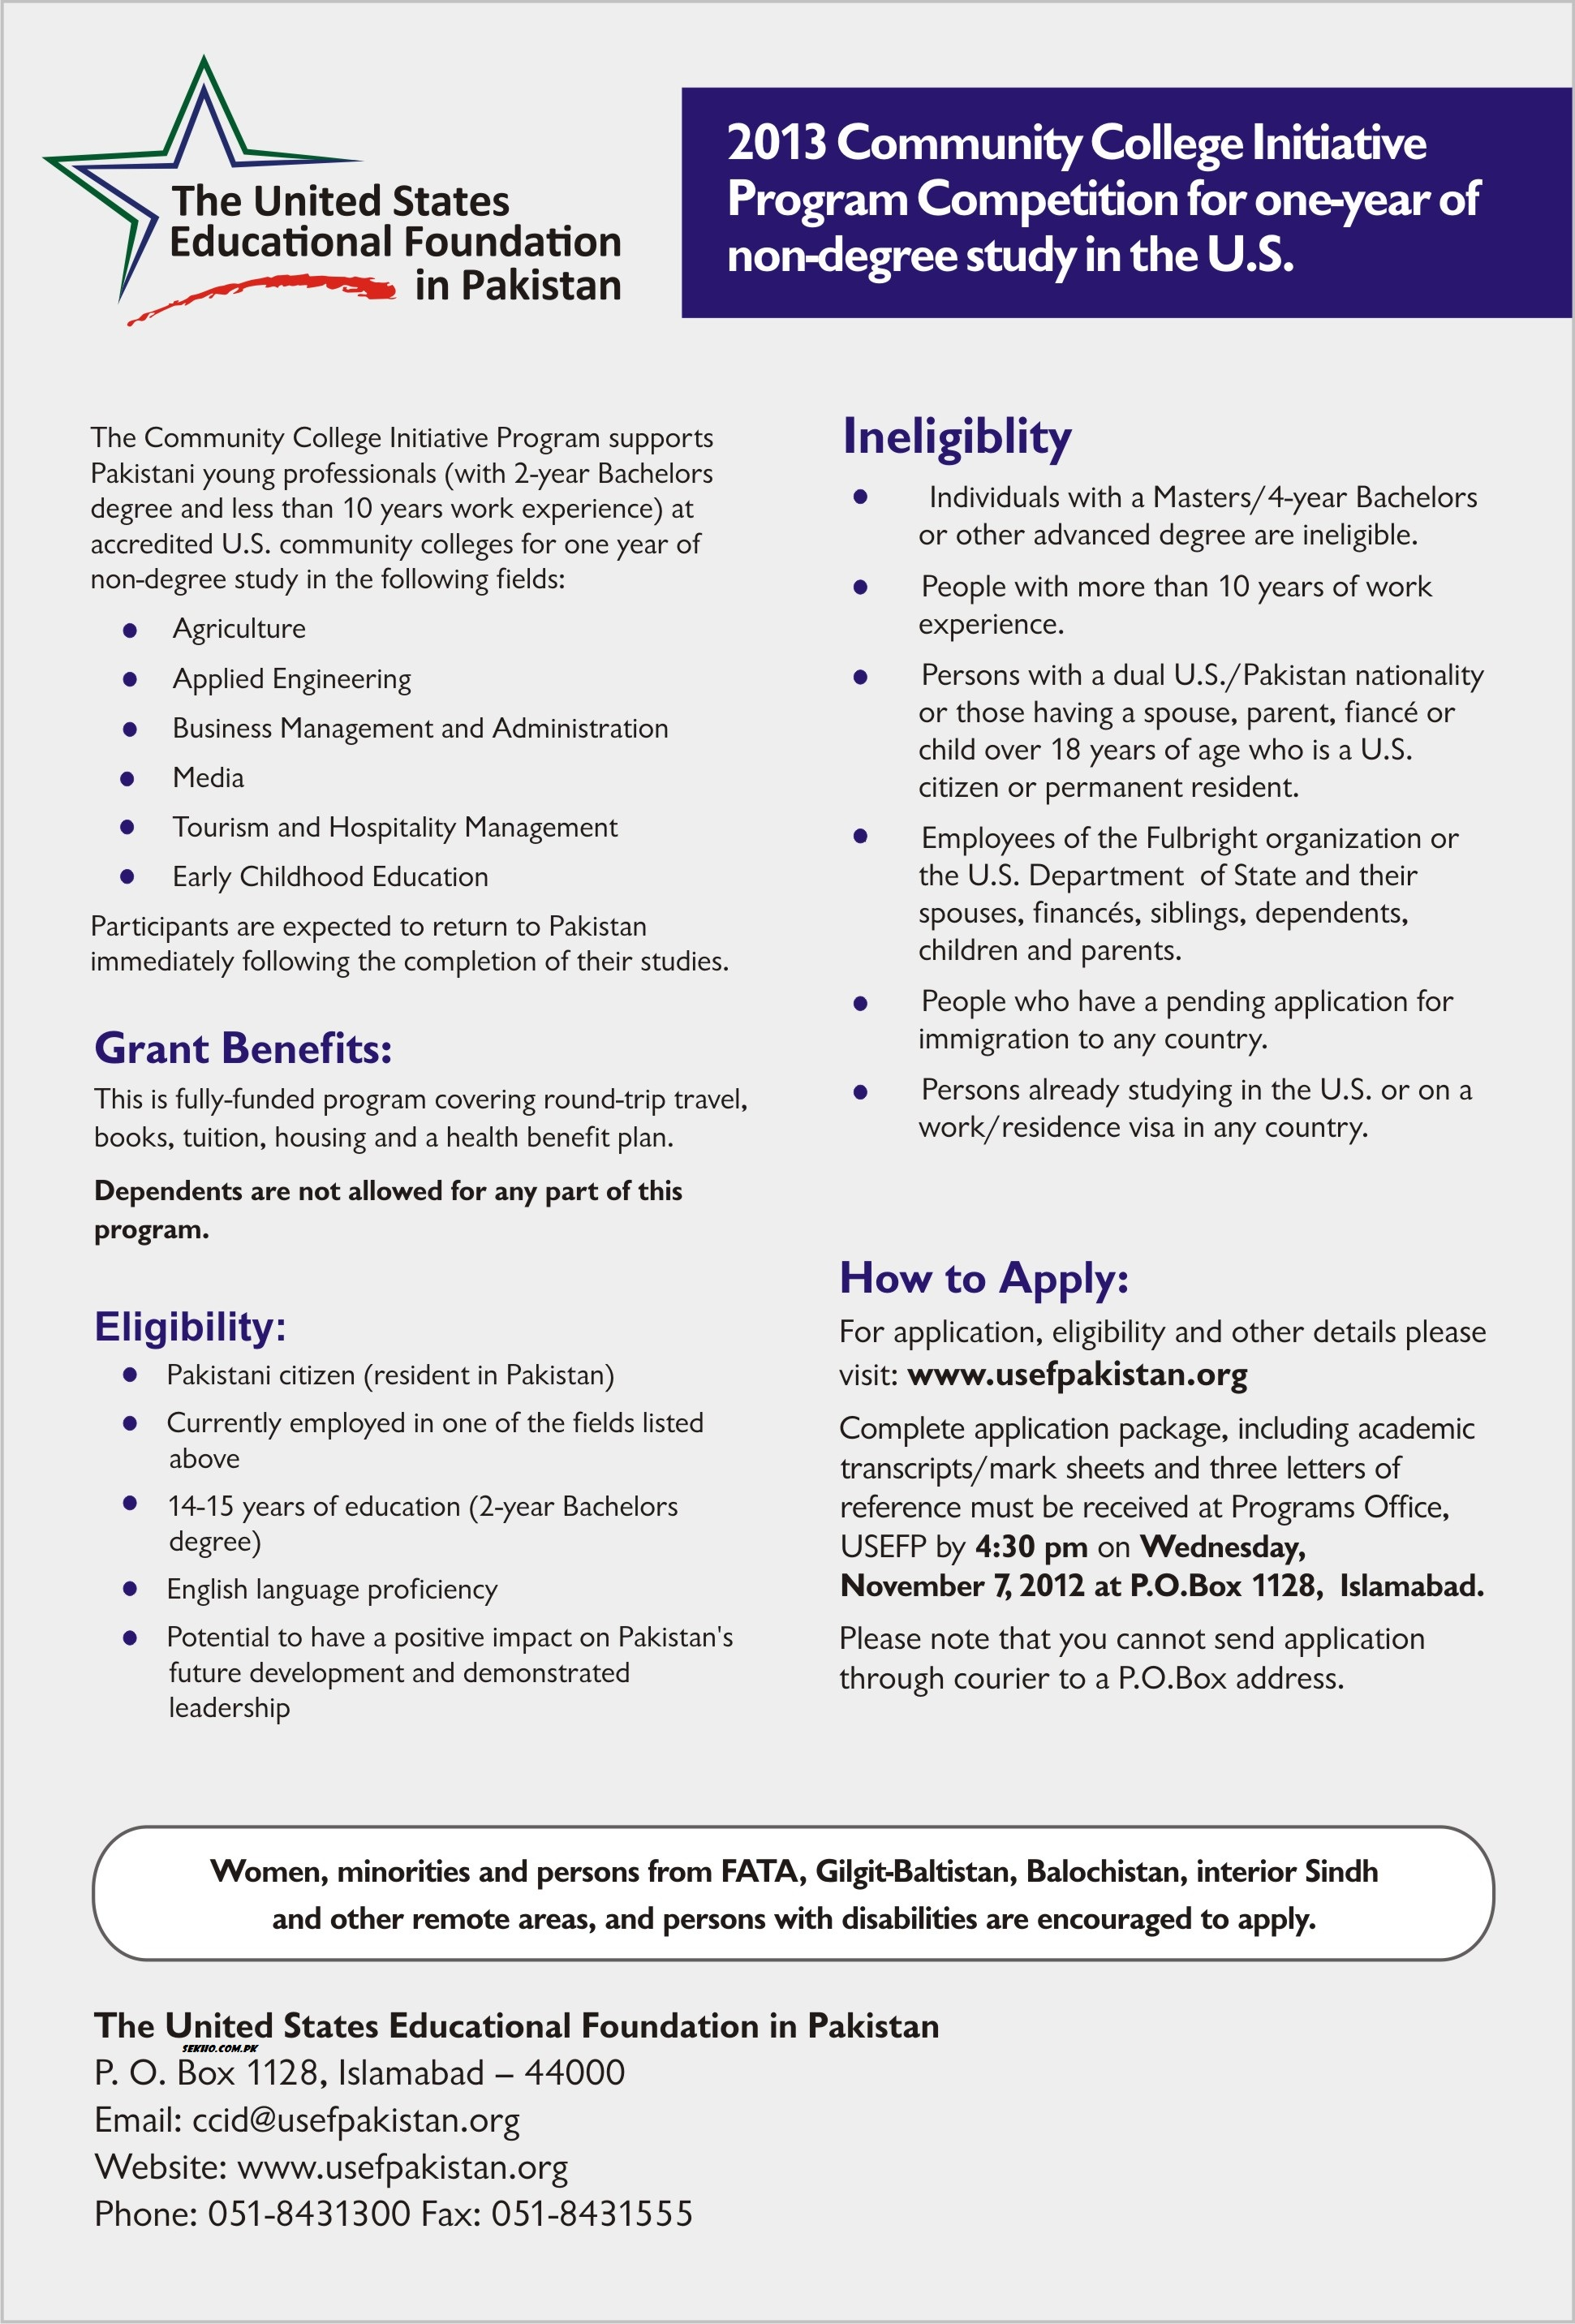 2013 Community College Initiative Program Competition